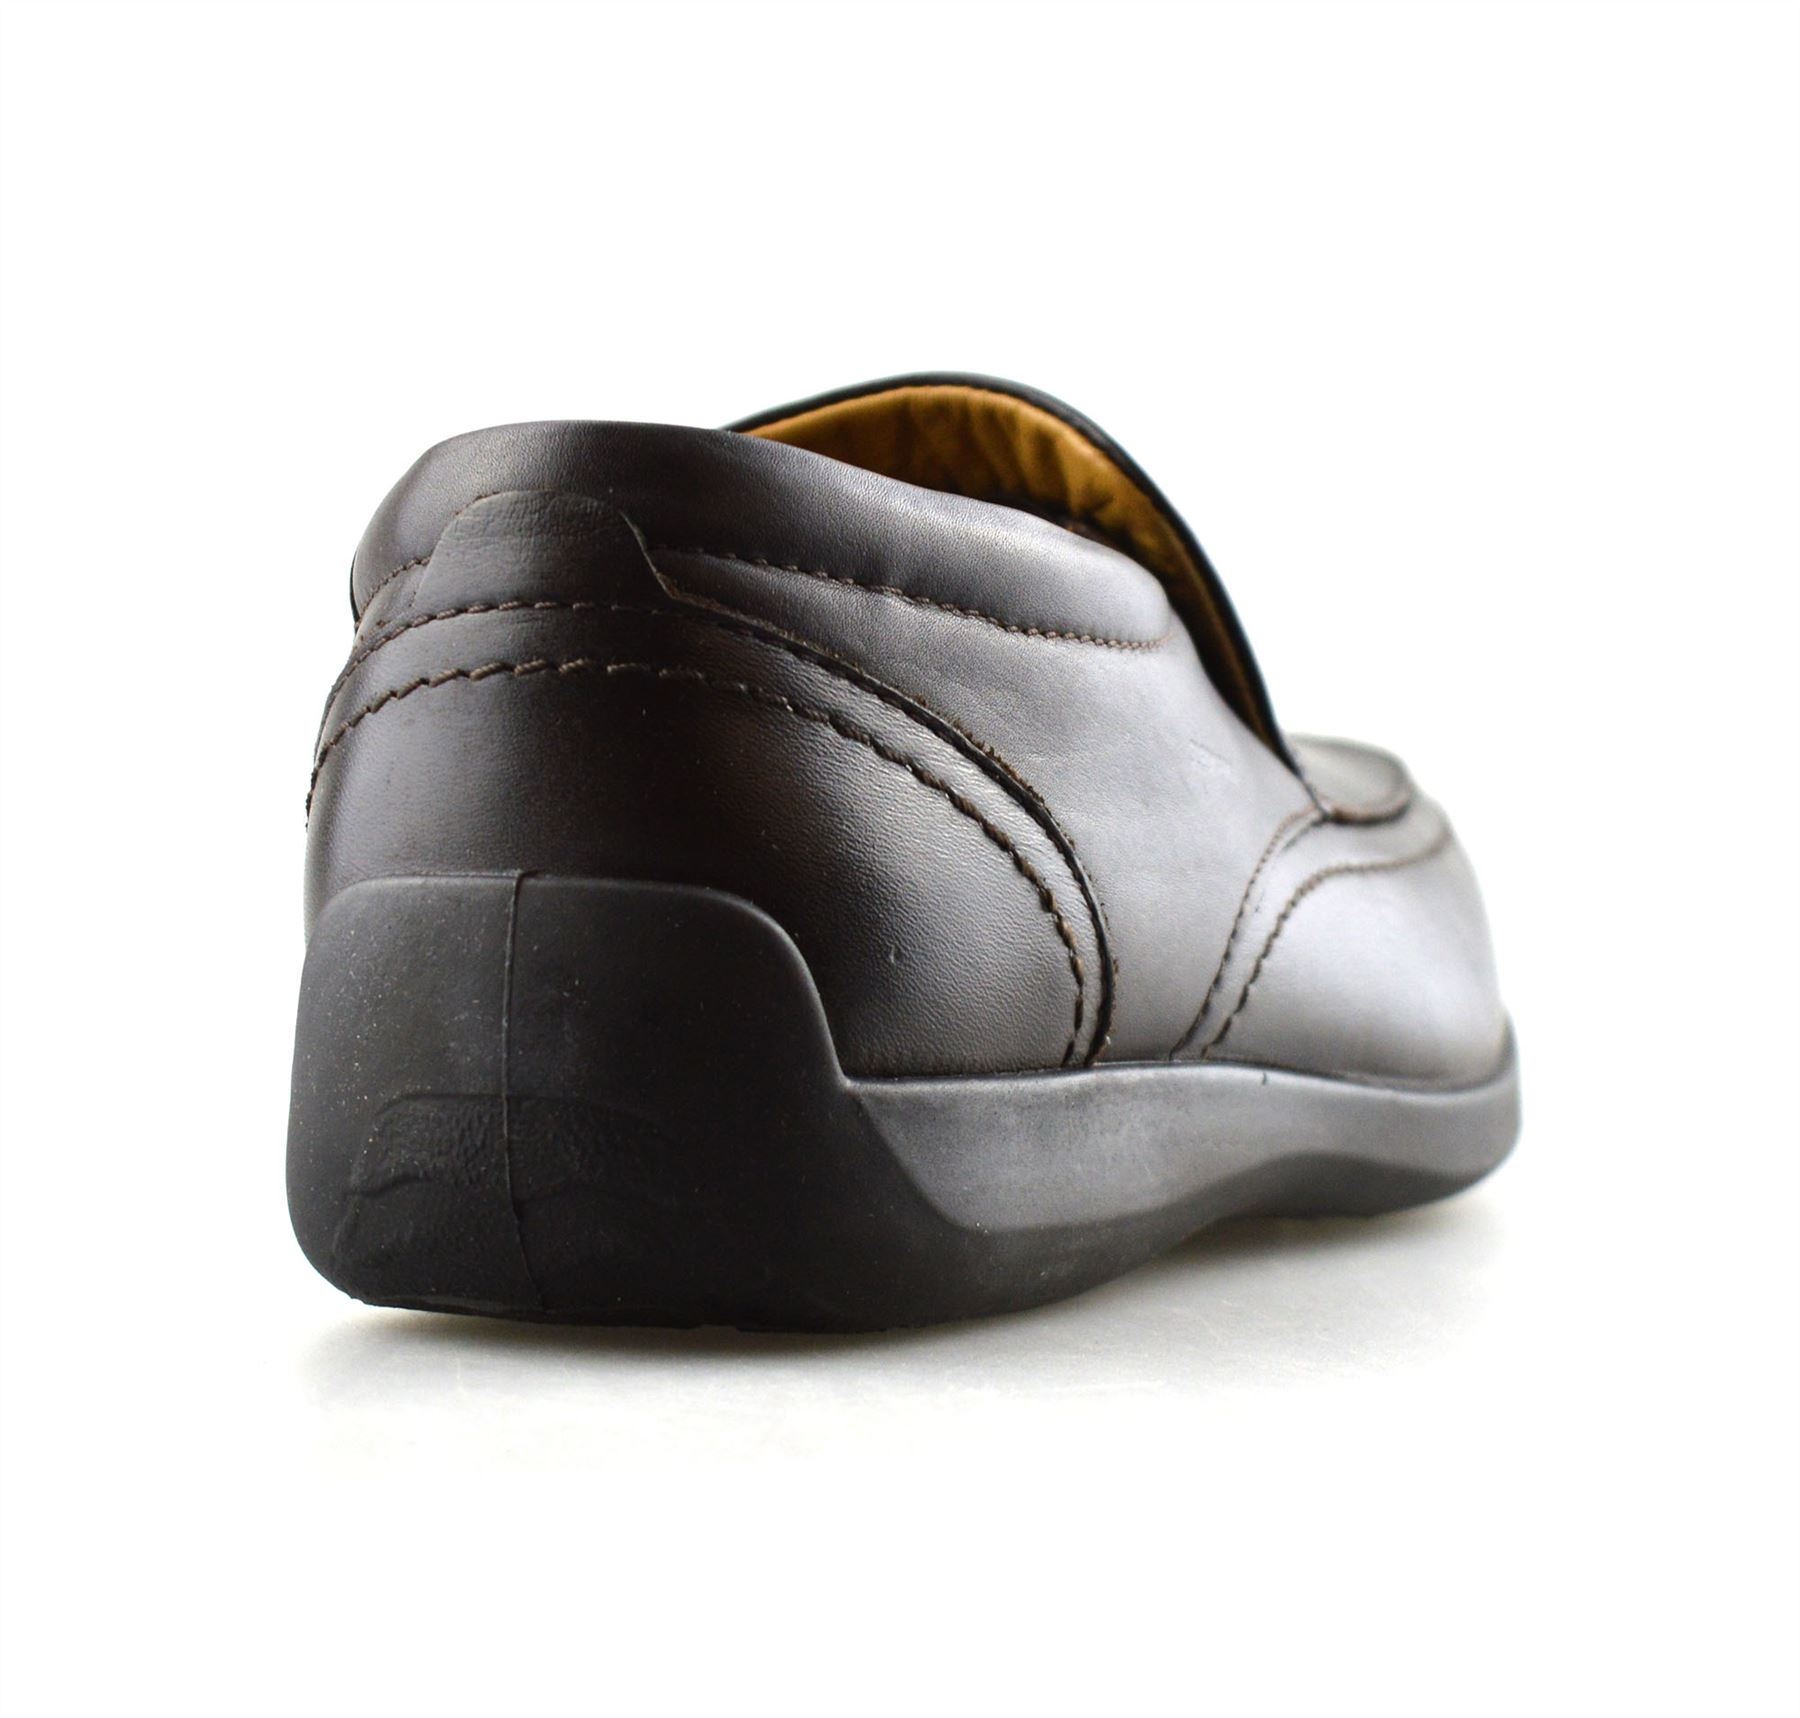 Mens-New-Leather-Casual-Slip-On-Walking-Loafers-Moccasin-Driving-Boat-Shoes-Size thumbnail 9